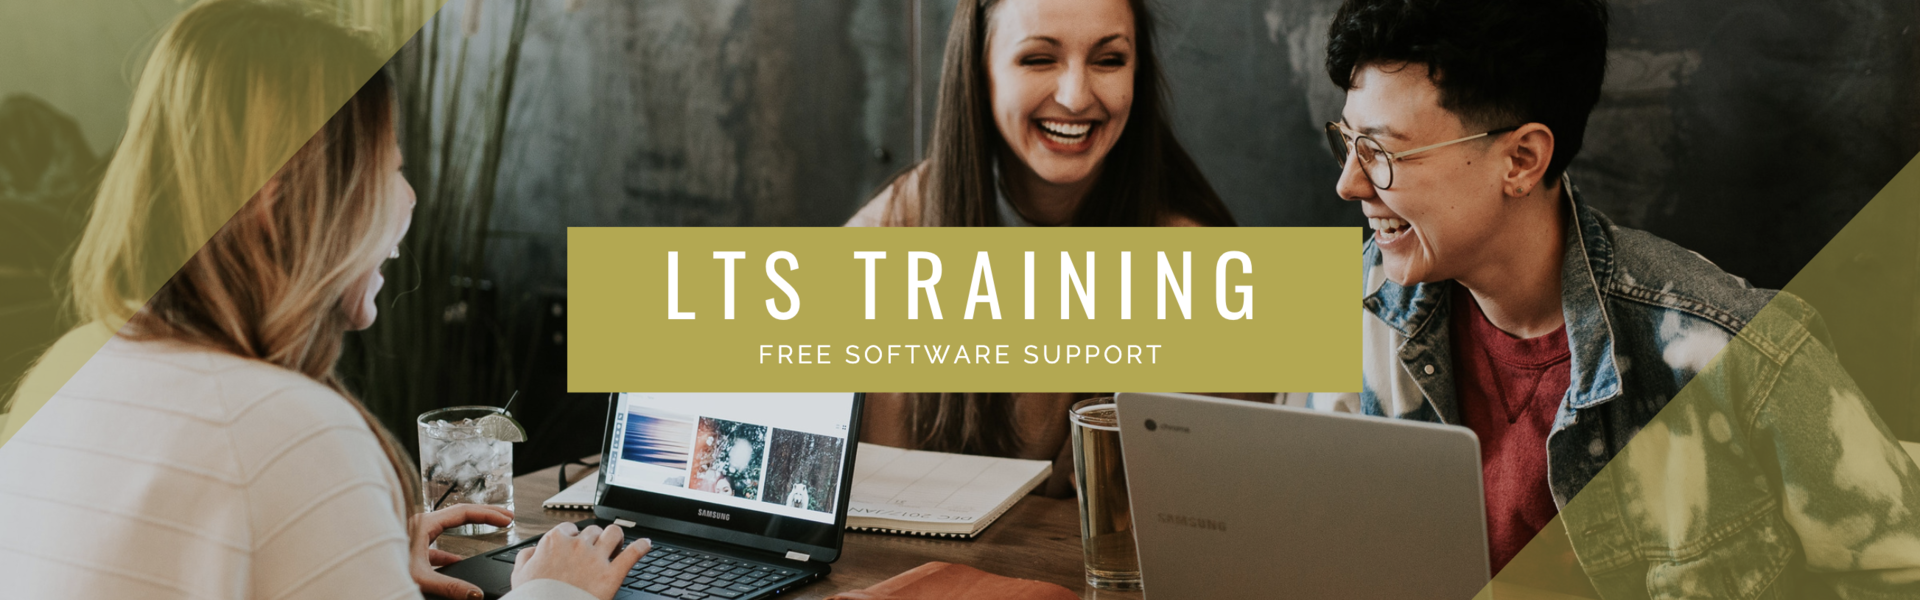 LTS Training free software support